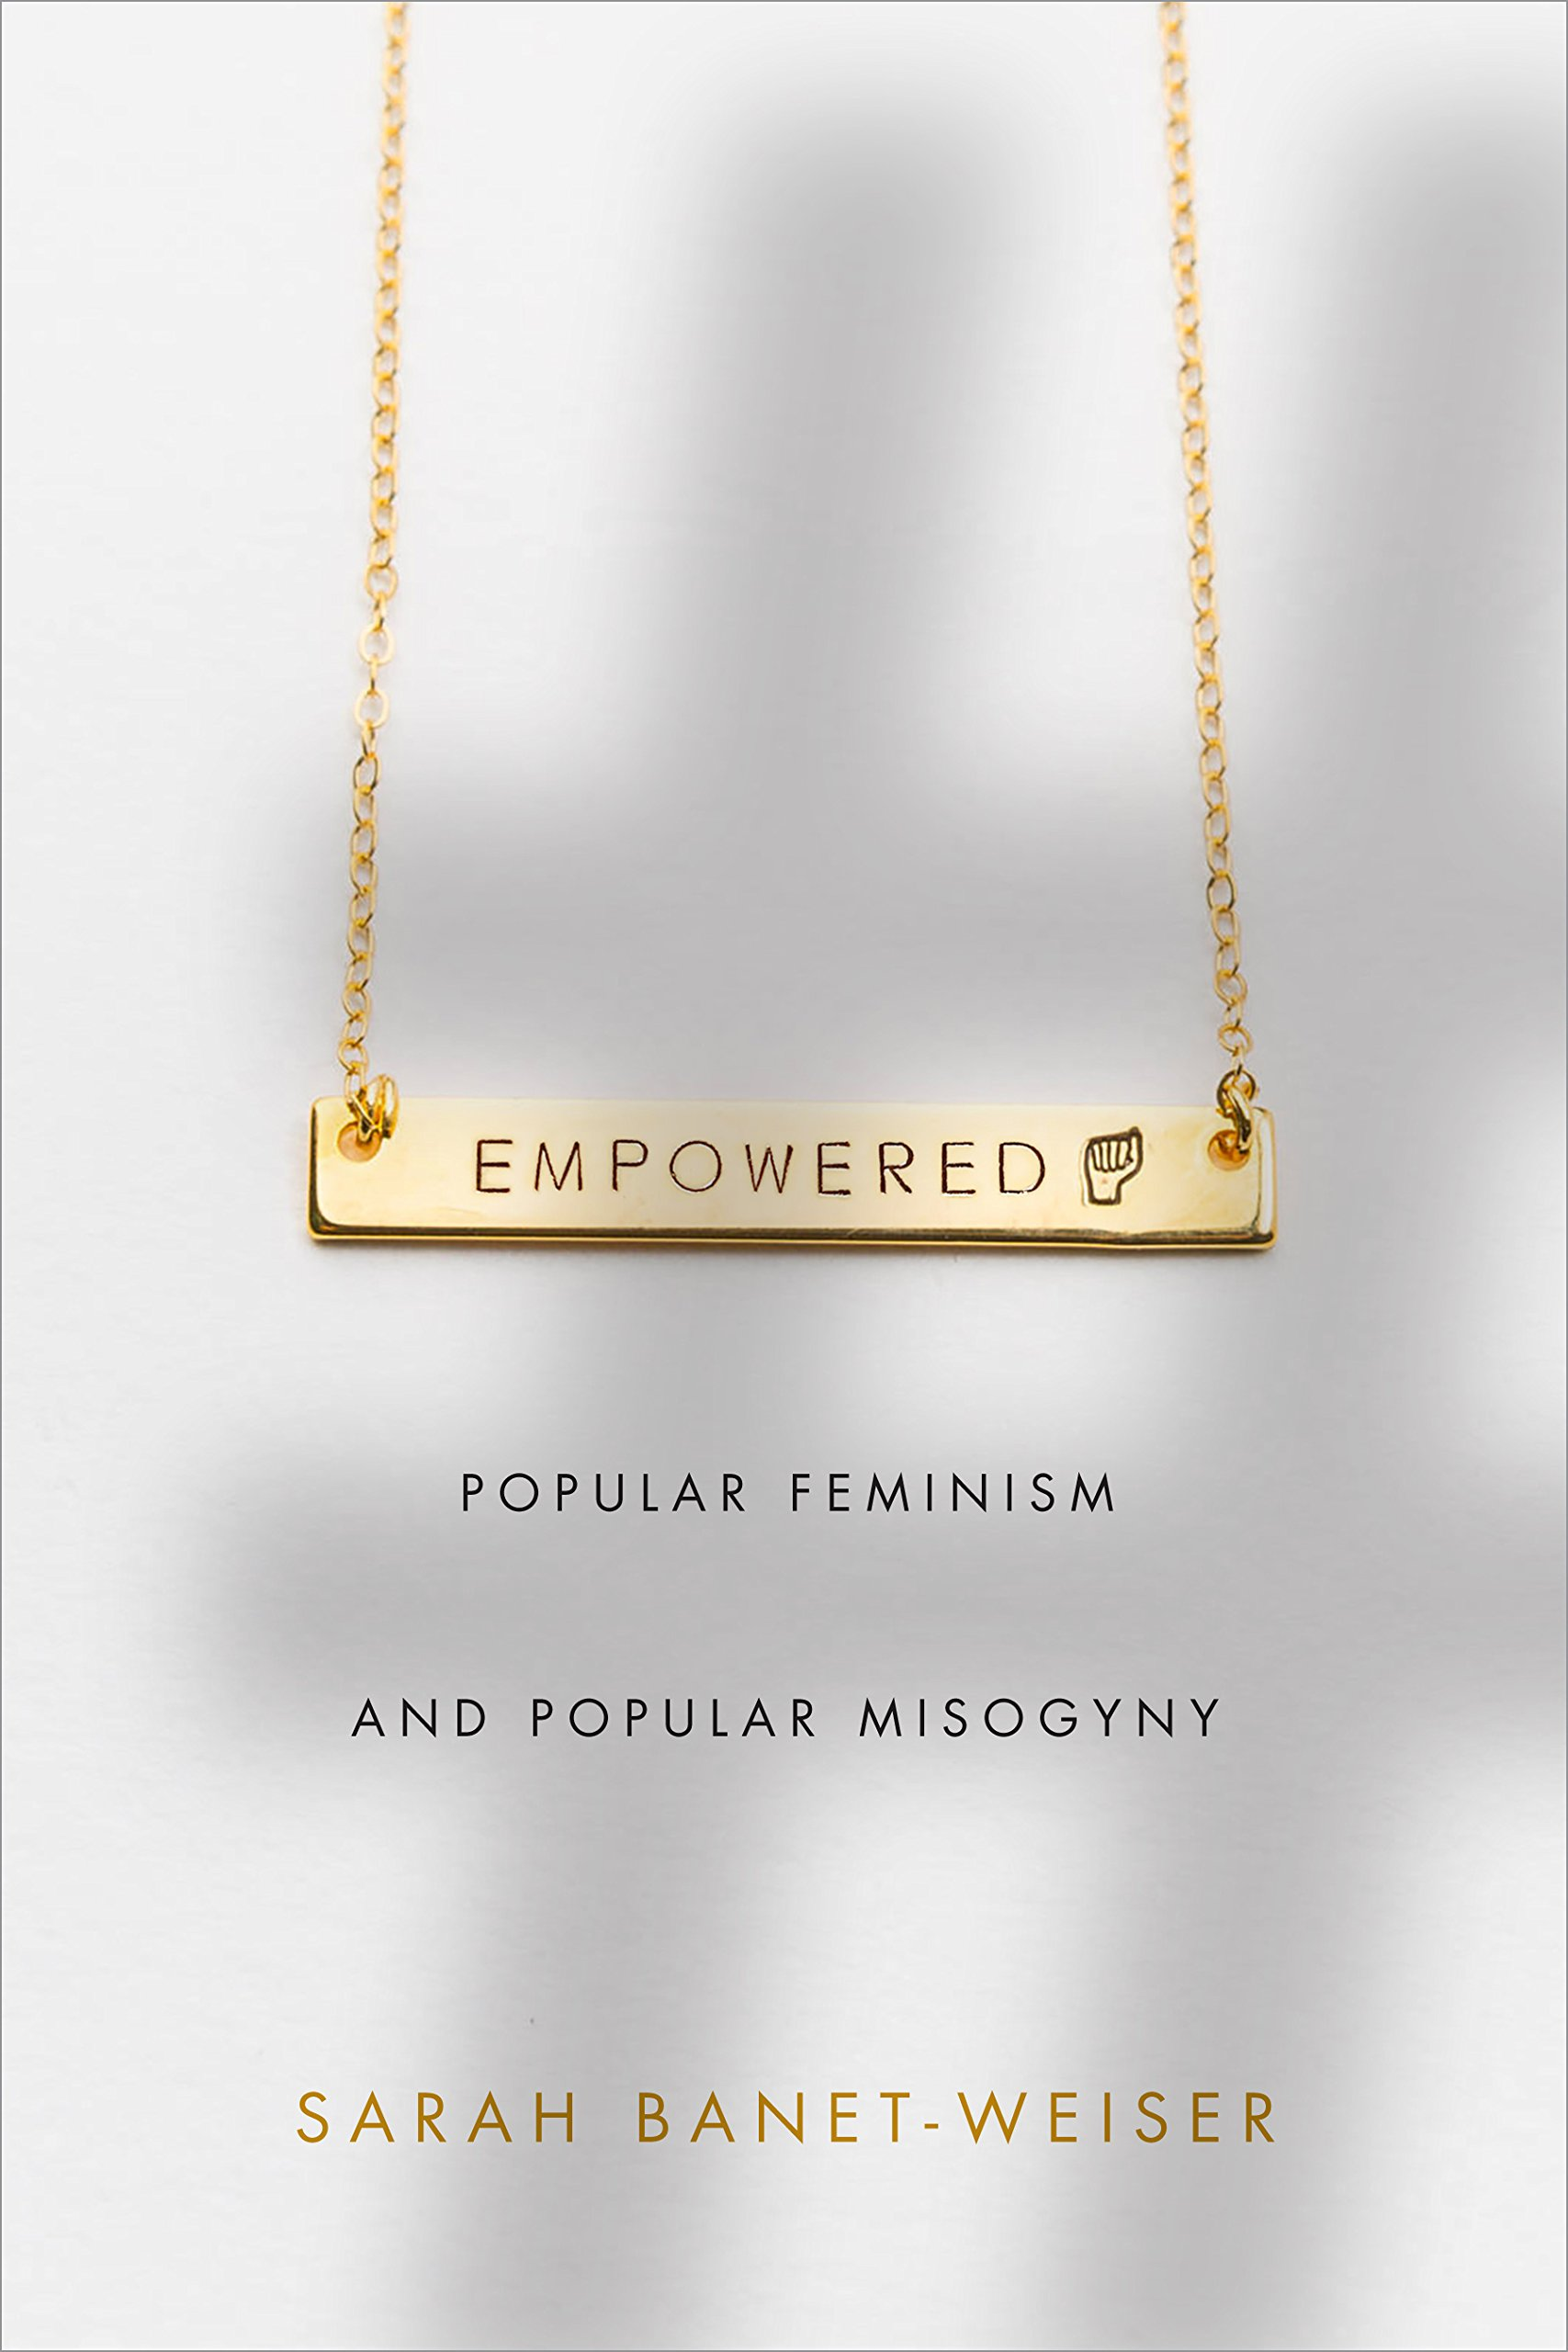 Empowered by Sarah Banet-Weiser